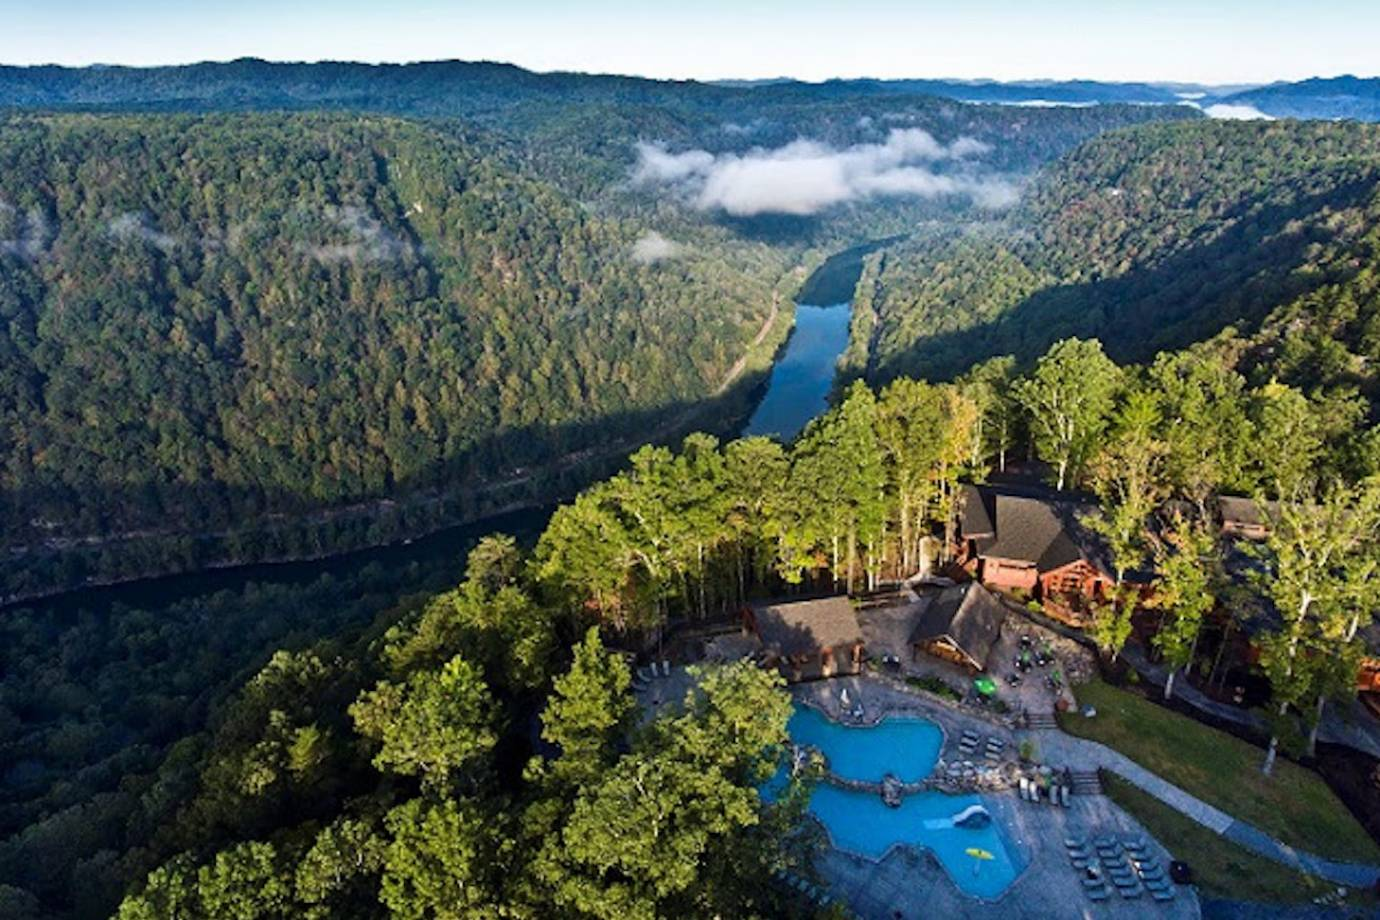 aerial view of lower river of the new river gorge, west virginia